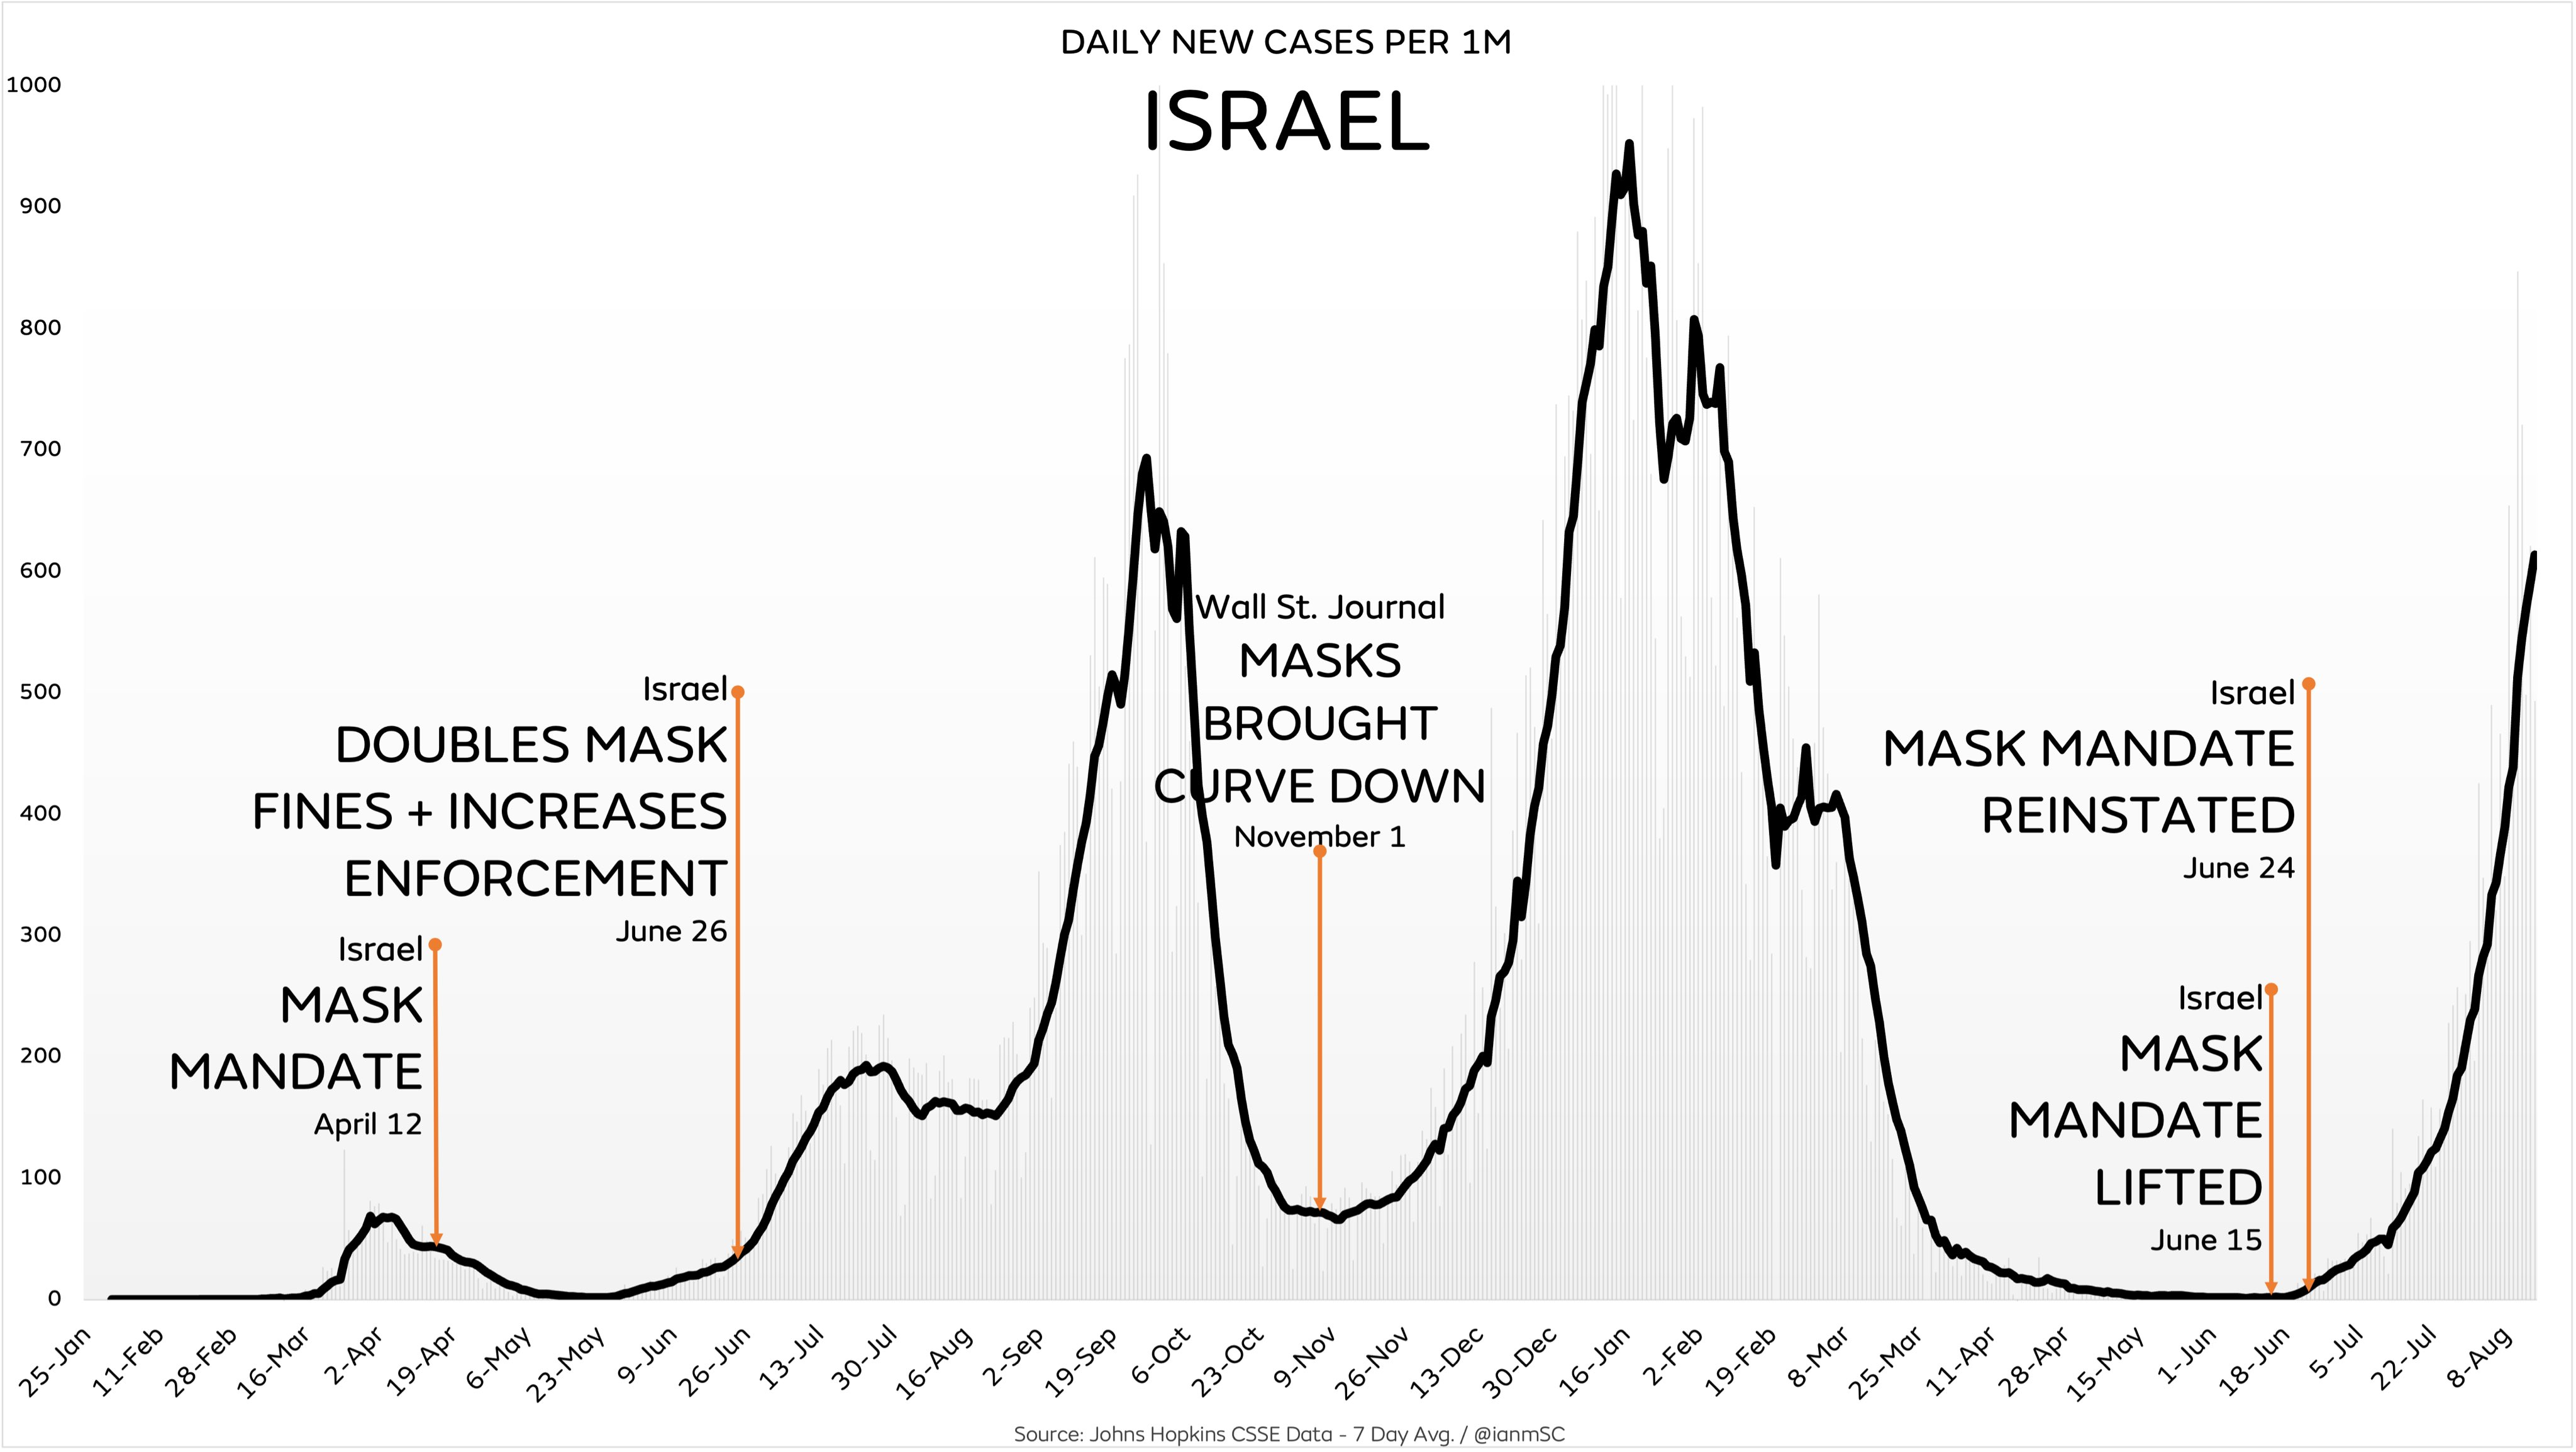 Are Face Masks Effective? The Evidence. Israel-3